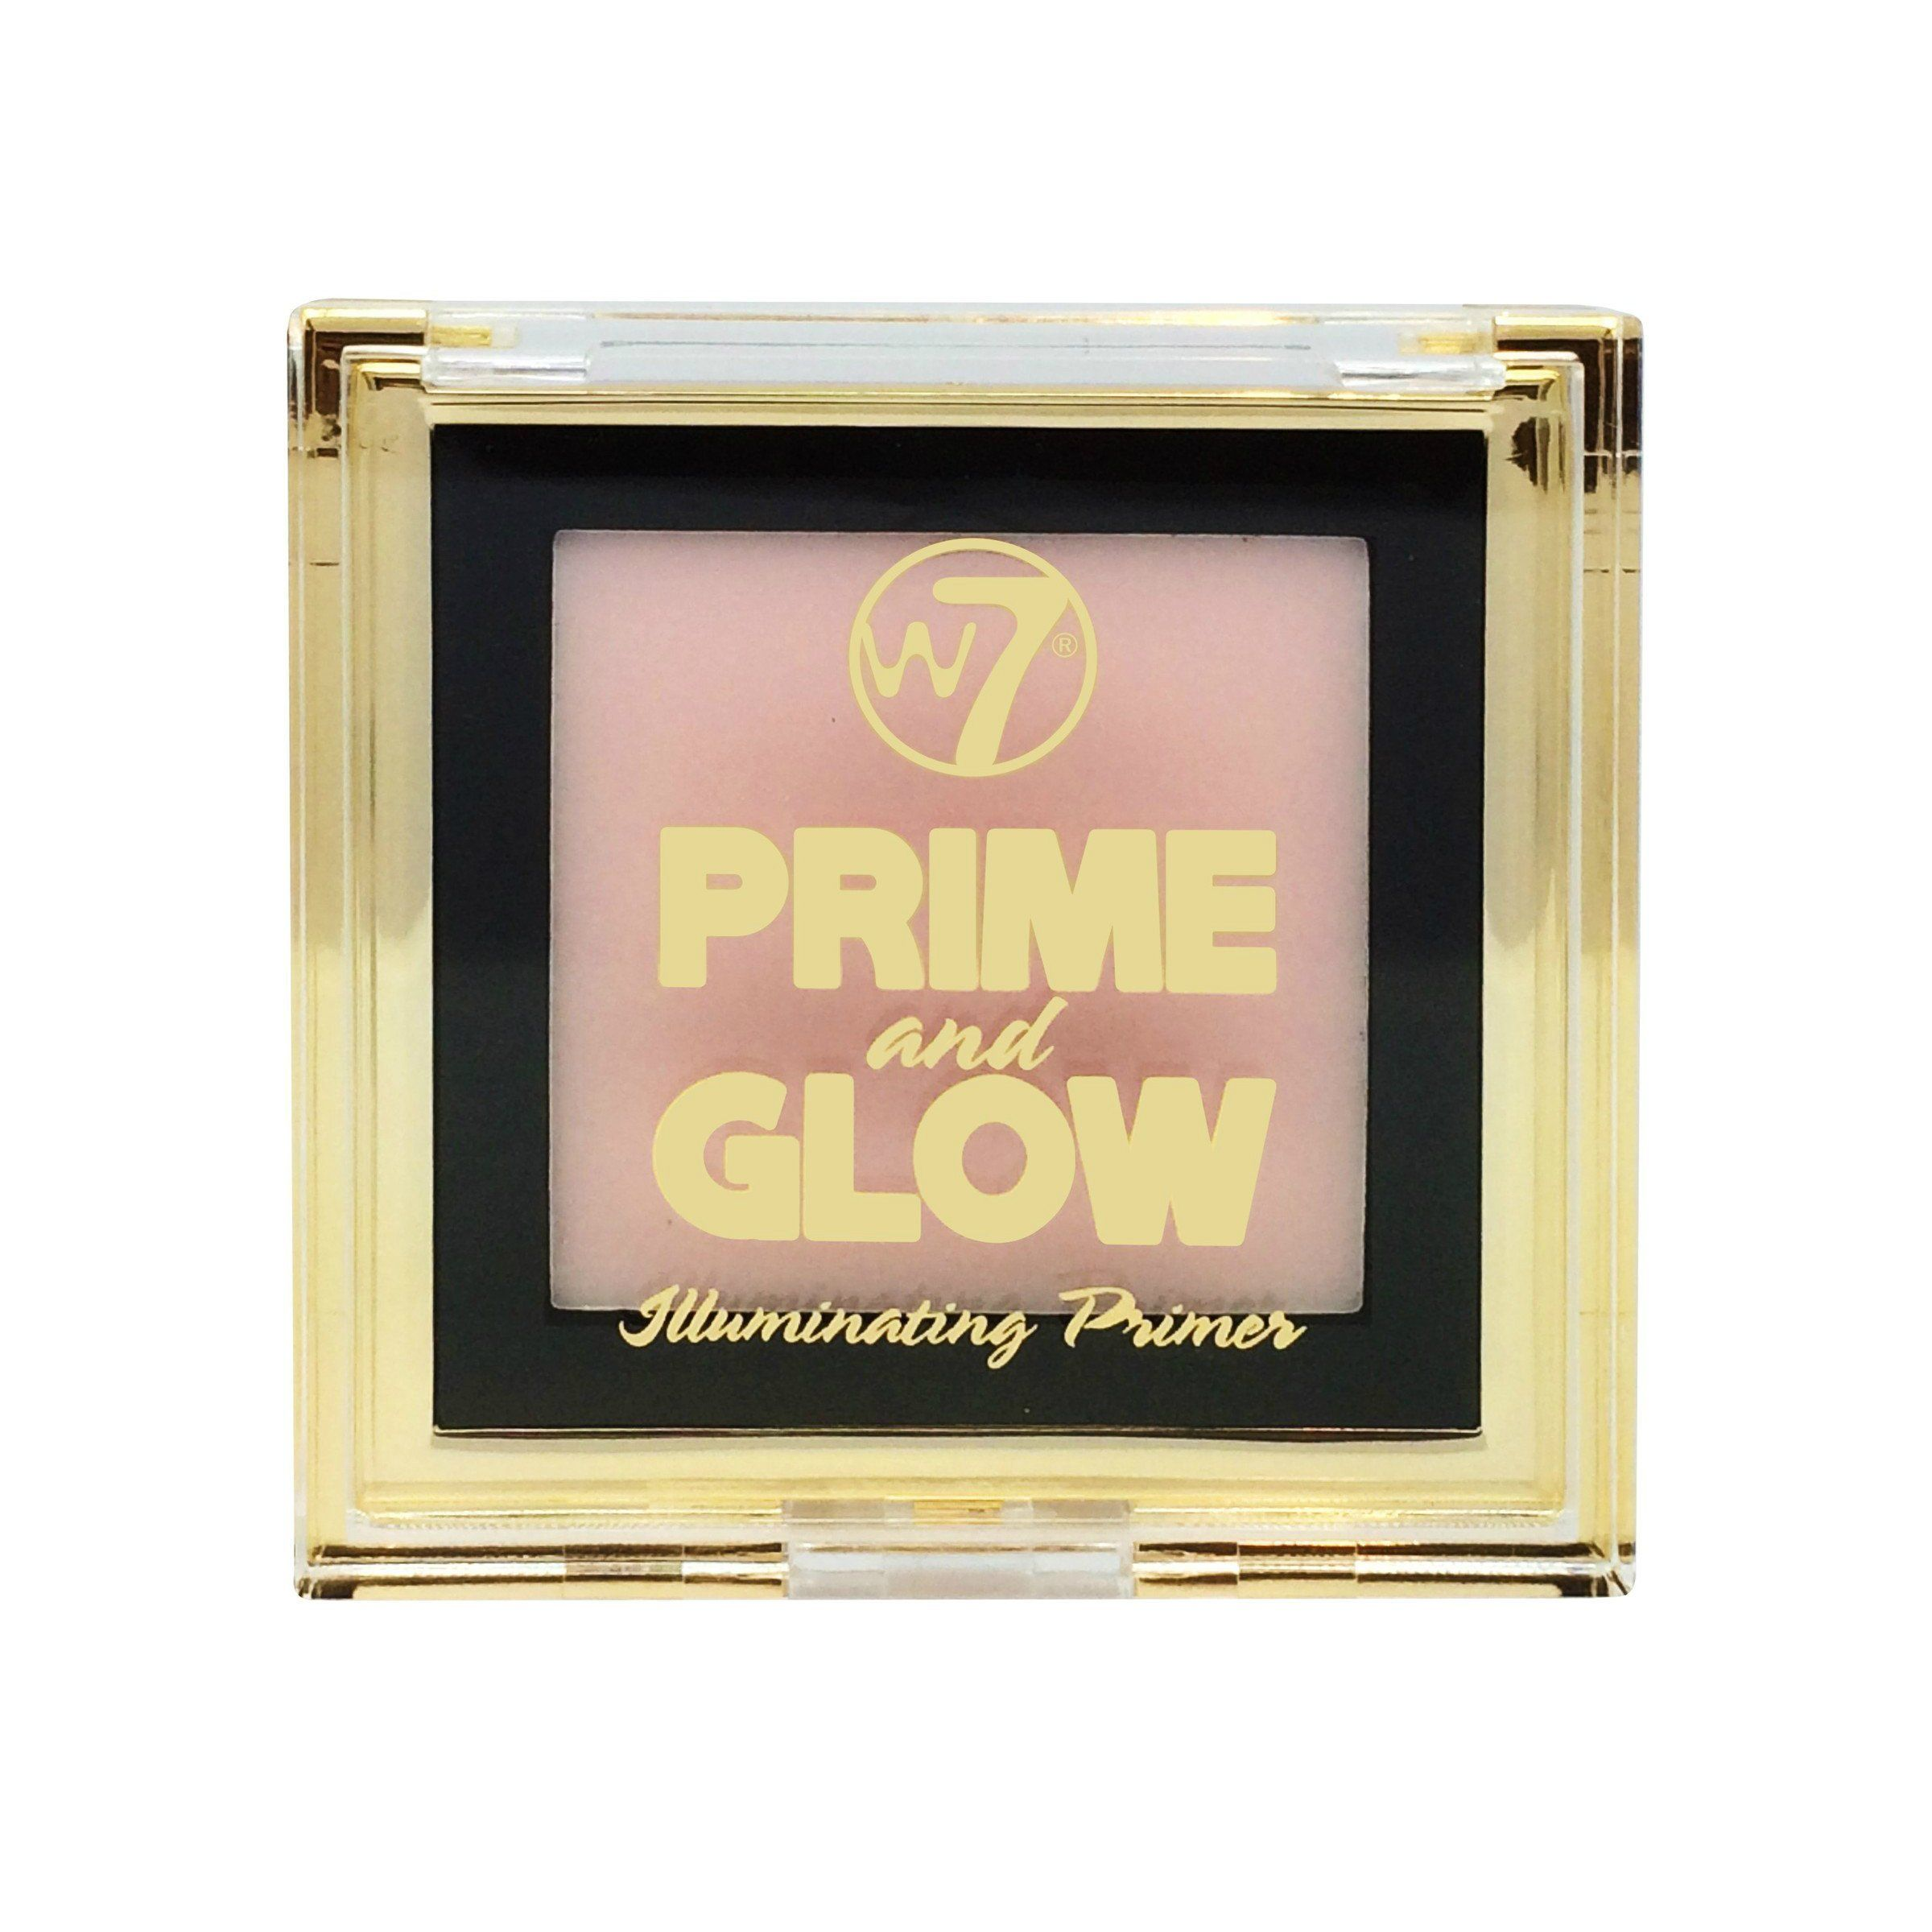 W7 Prime and Glow Illuminating Primer